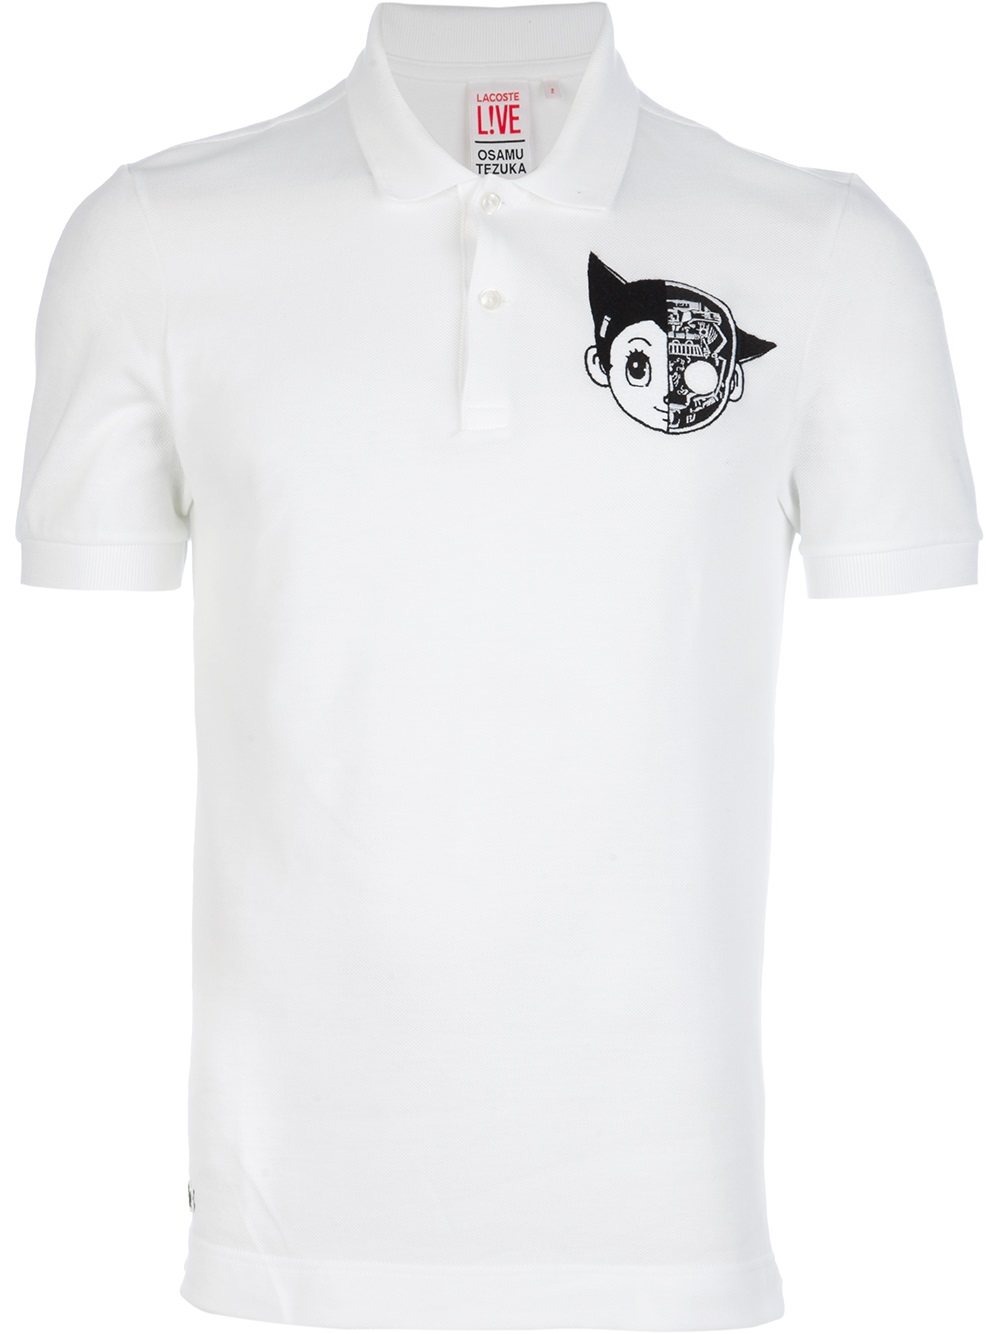 lyst lacoste printed polo shirt in white for men. Black Bedroom Furniture Sets. Home Design Ideas